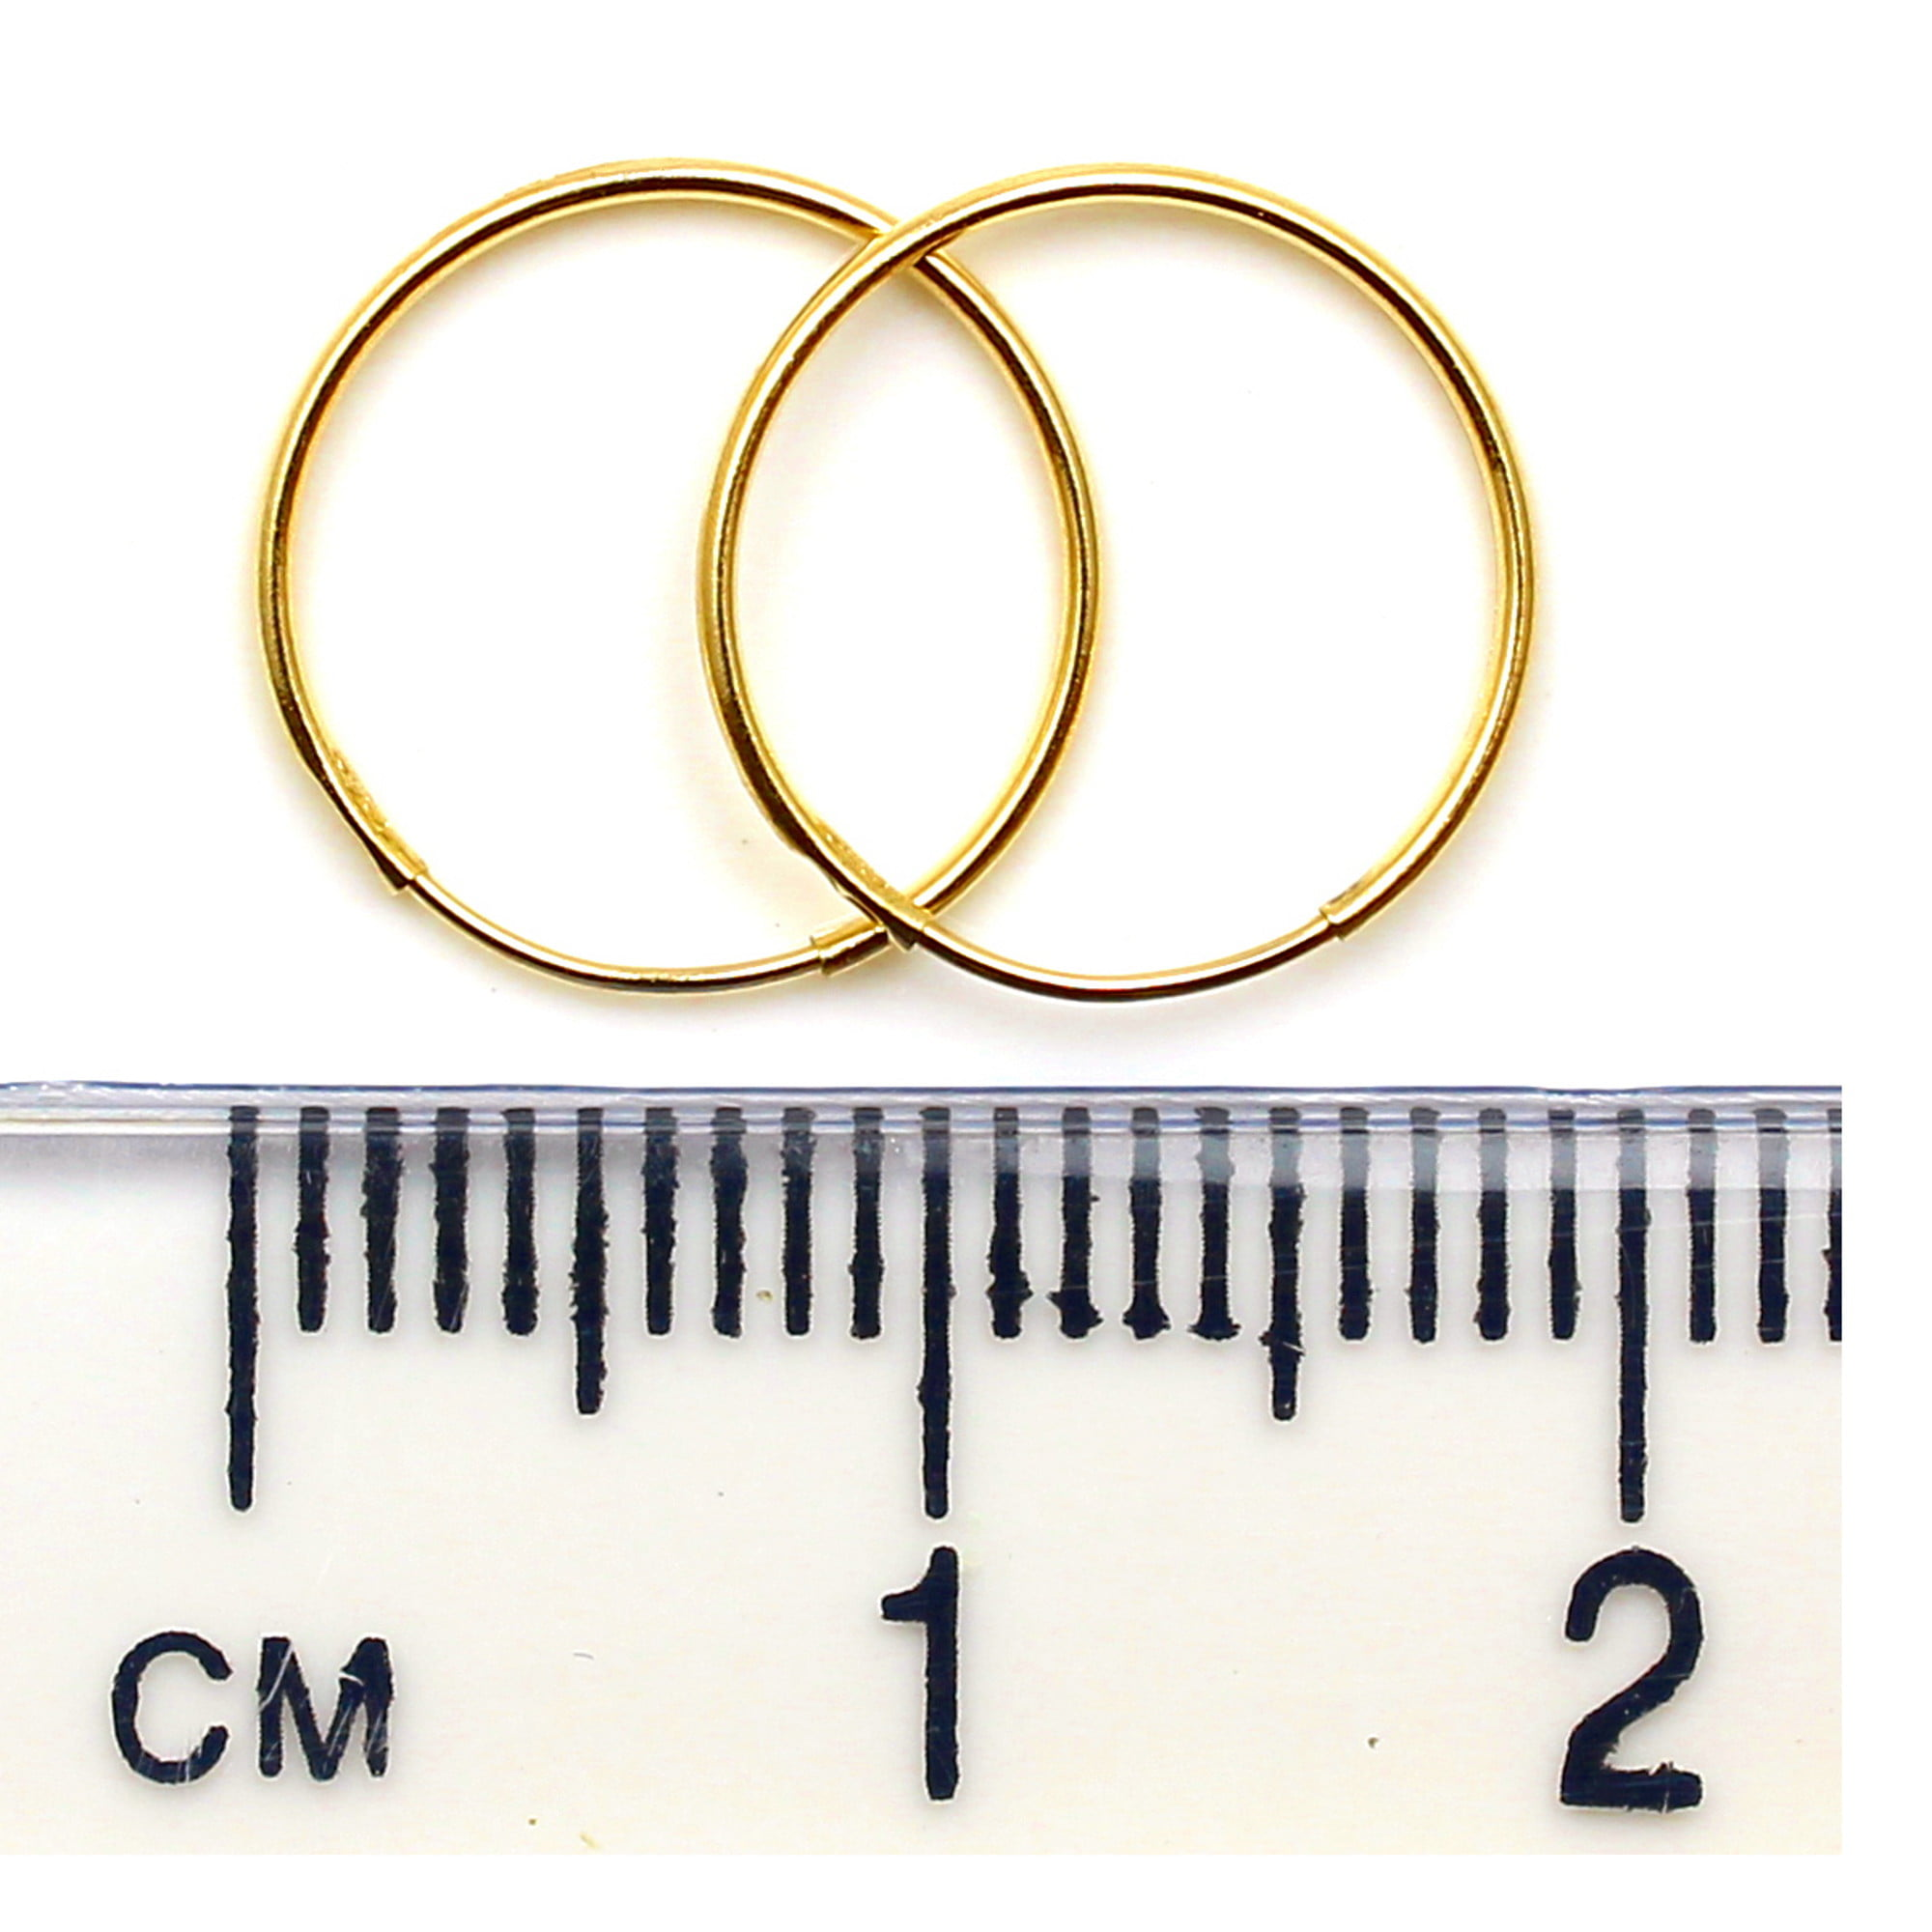 12mm gold hoops 9ct yellow gold ruler